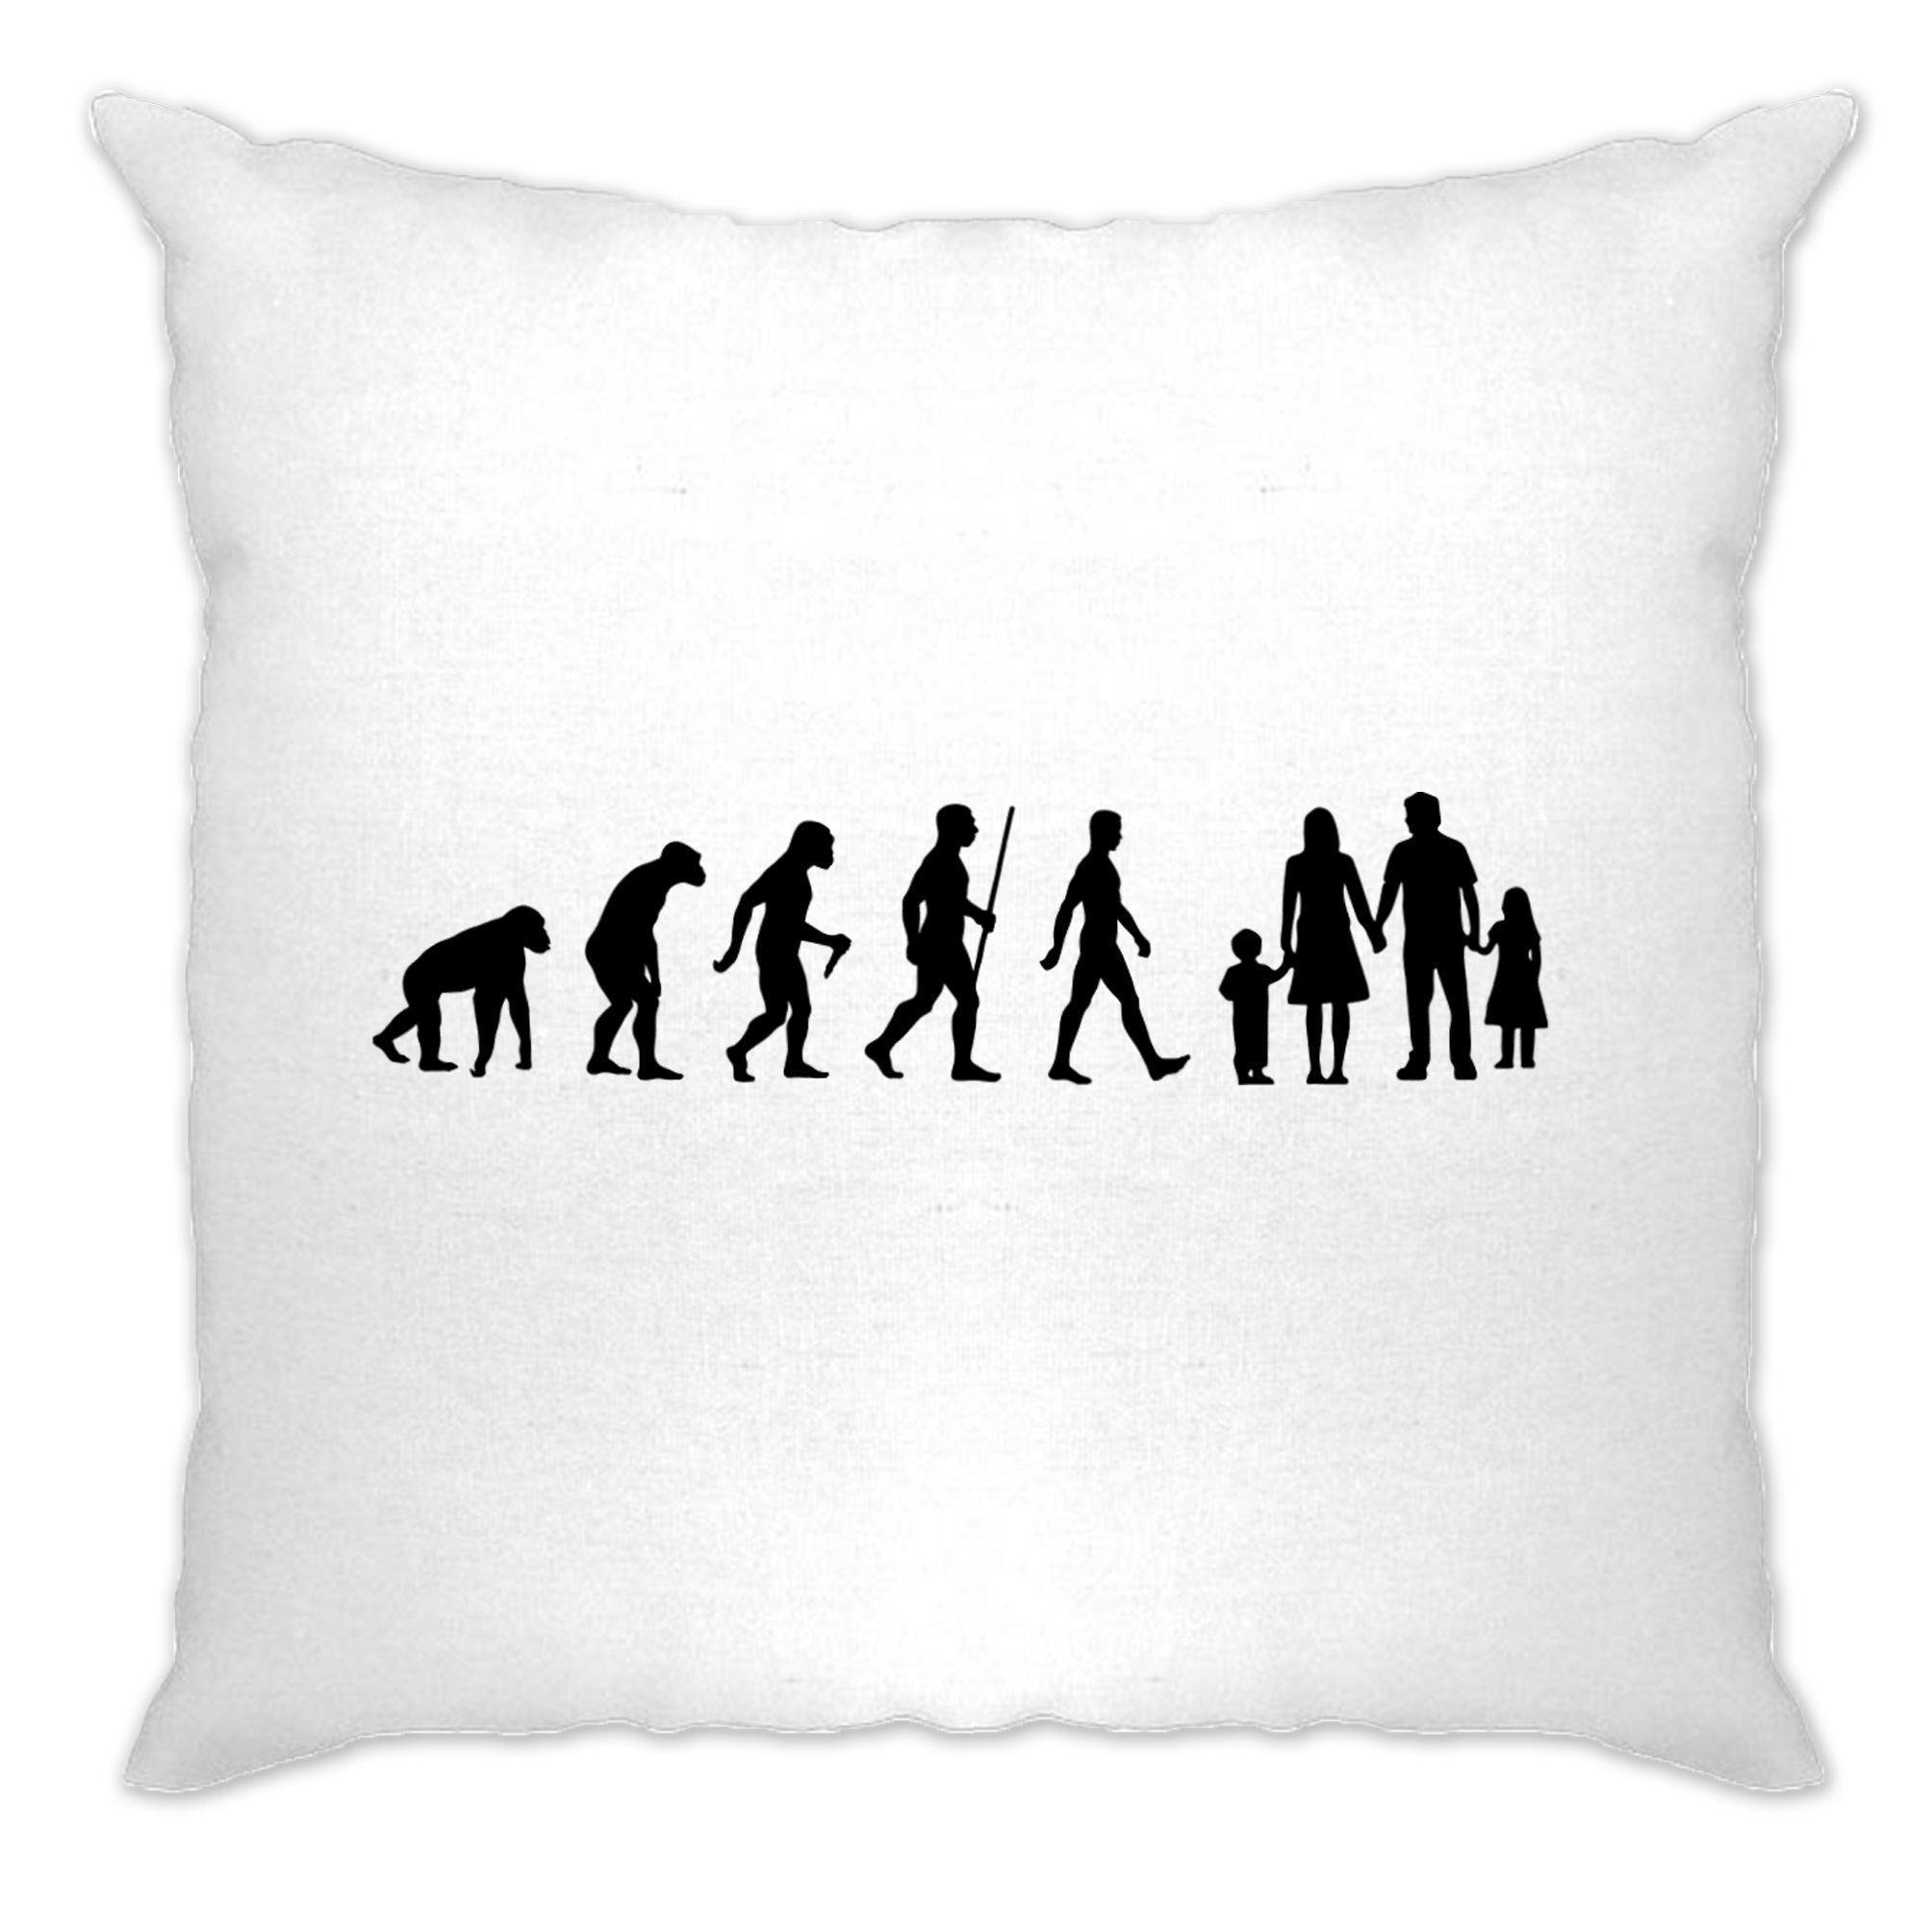 Parenthood Cushion Cover Evolution Of A Family Girl And Boy